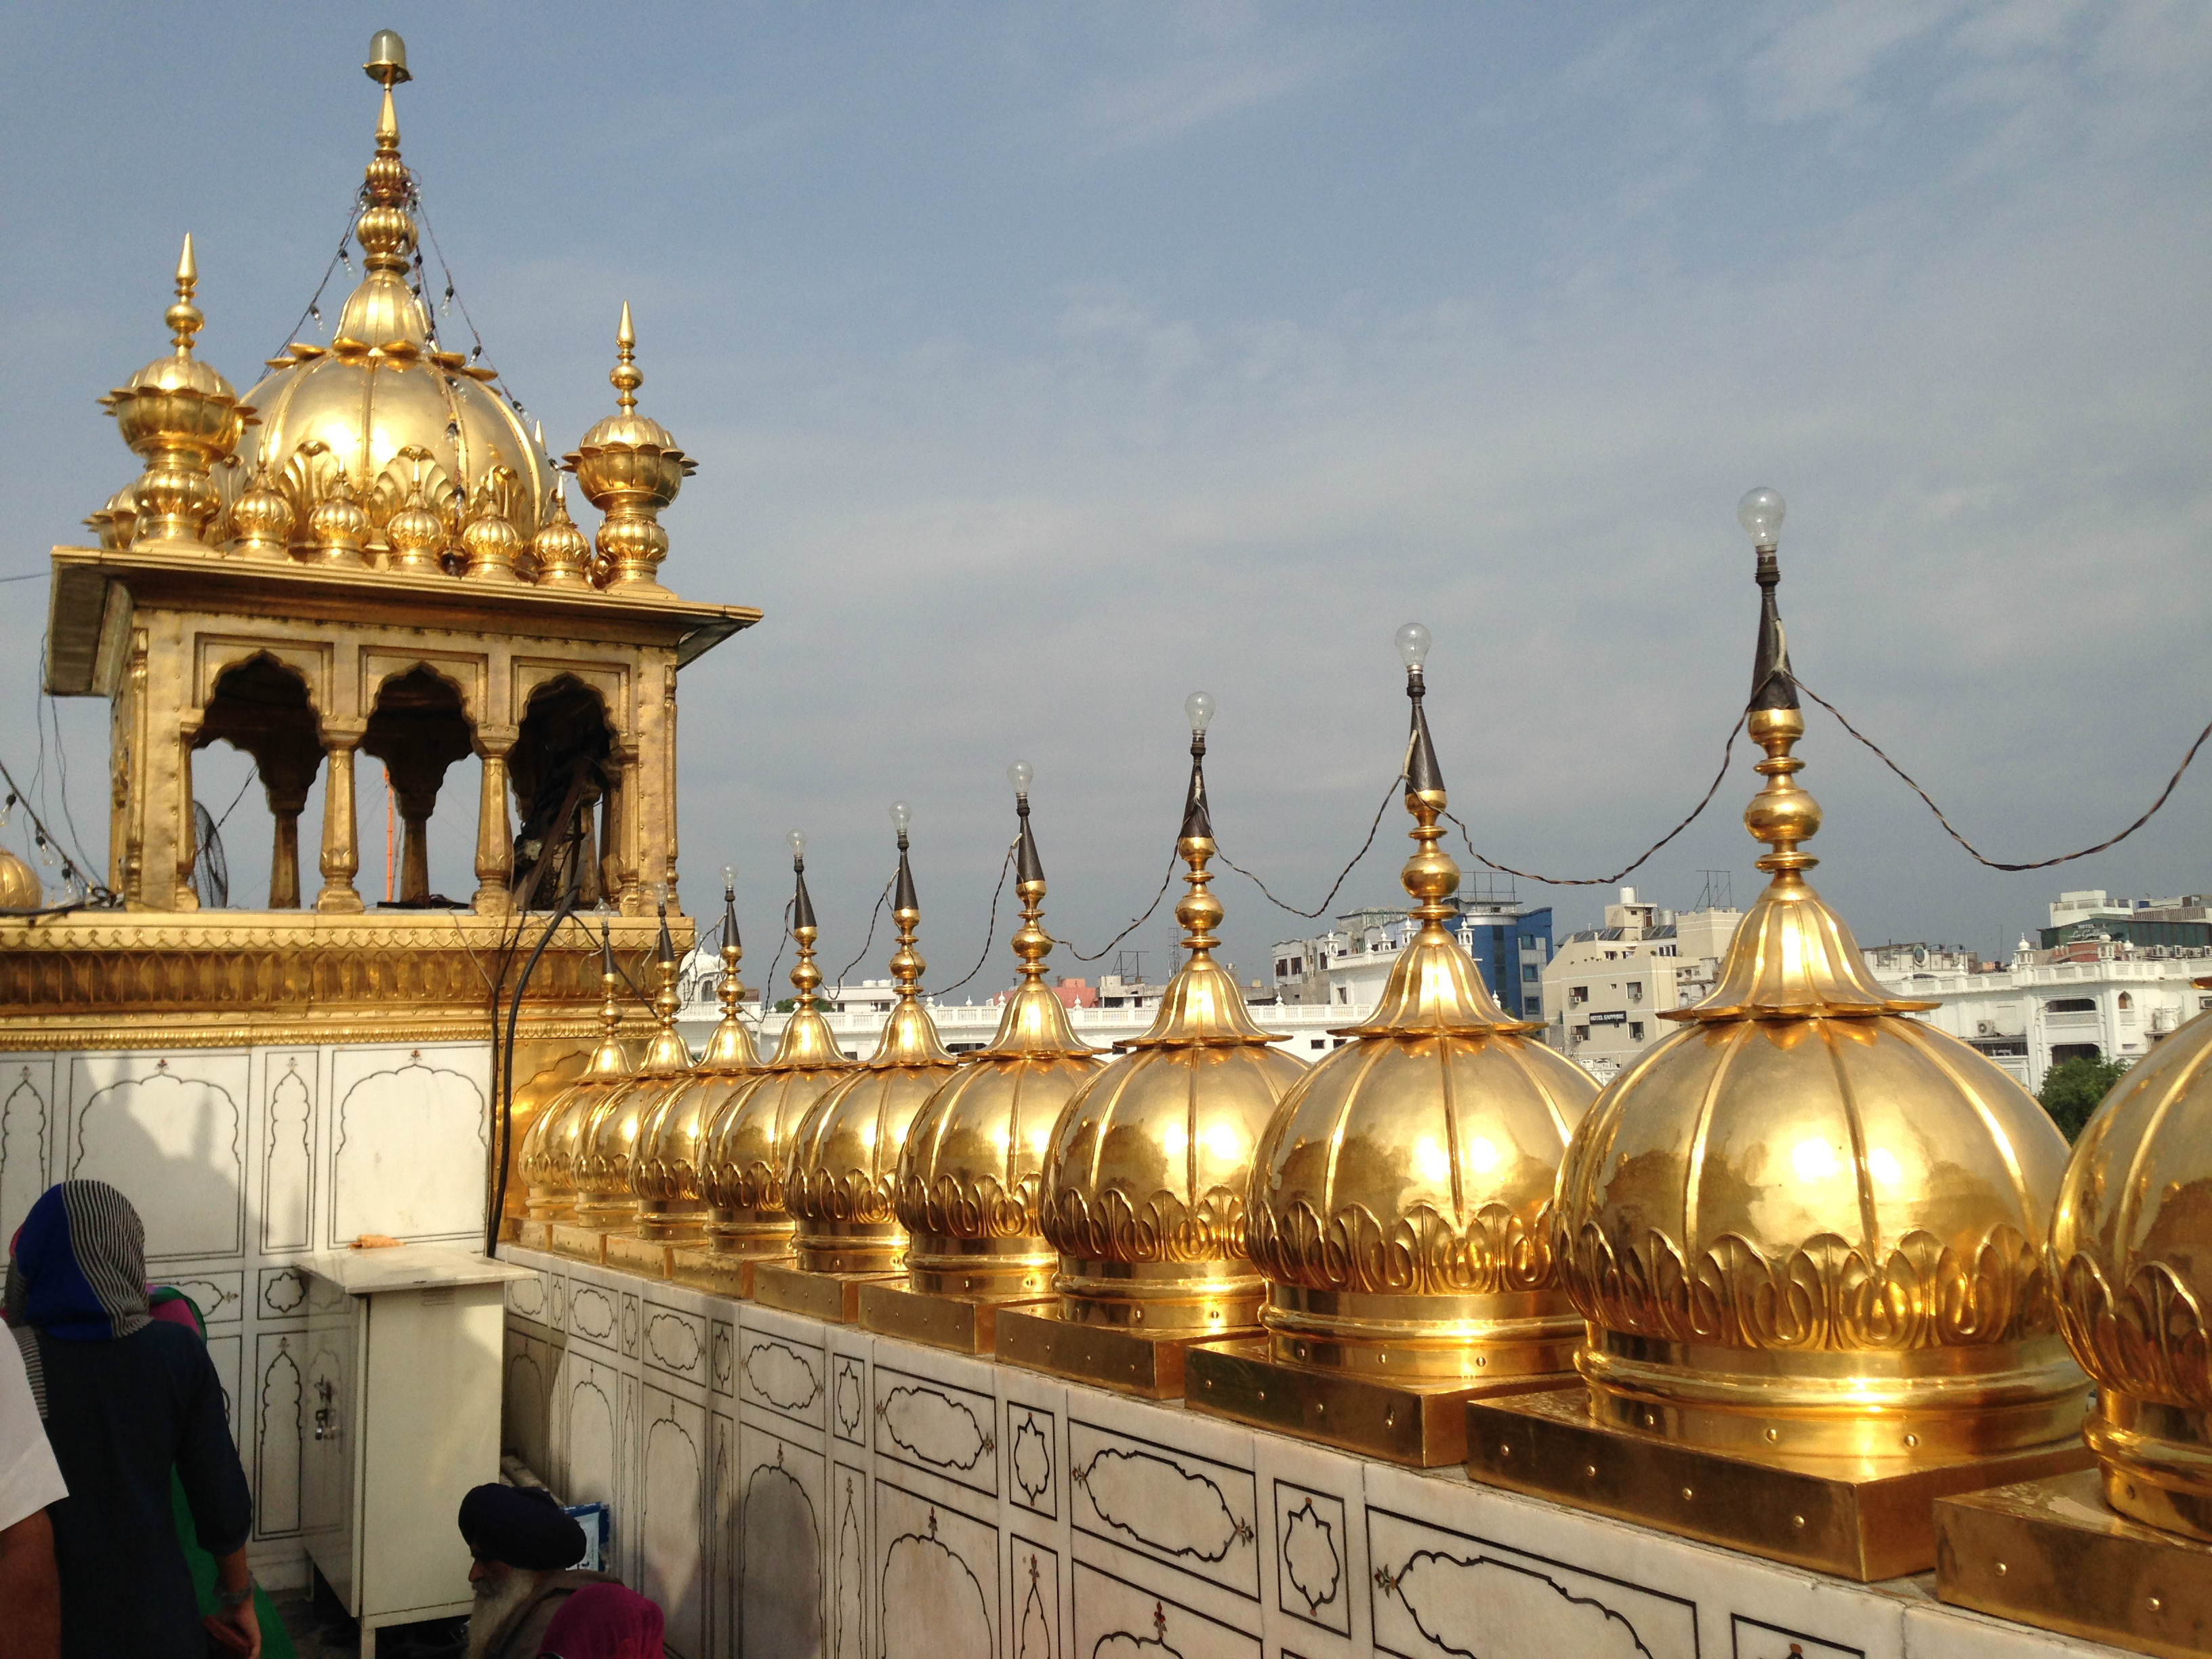 Golden Dome, Golden Temple, Amritsar | © Sangita Sinha